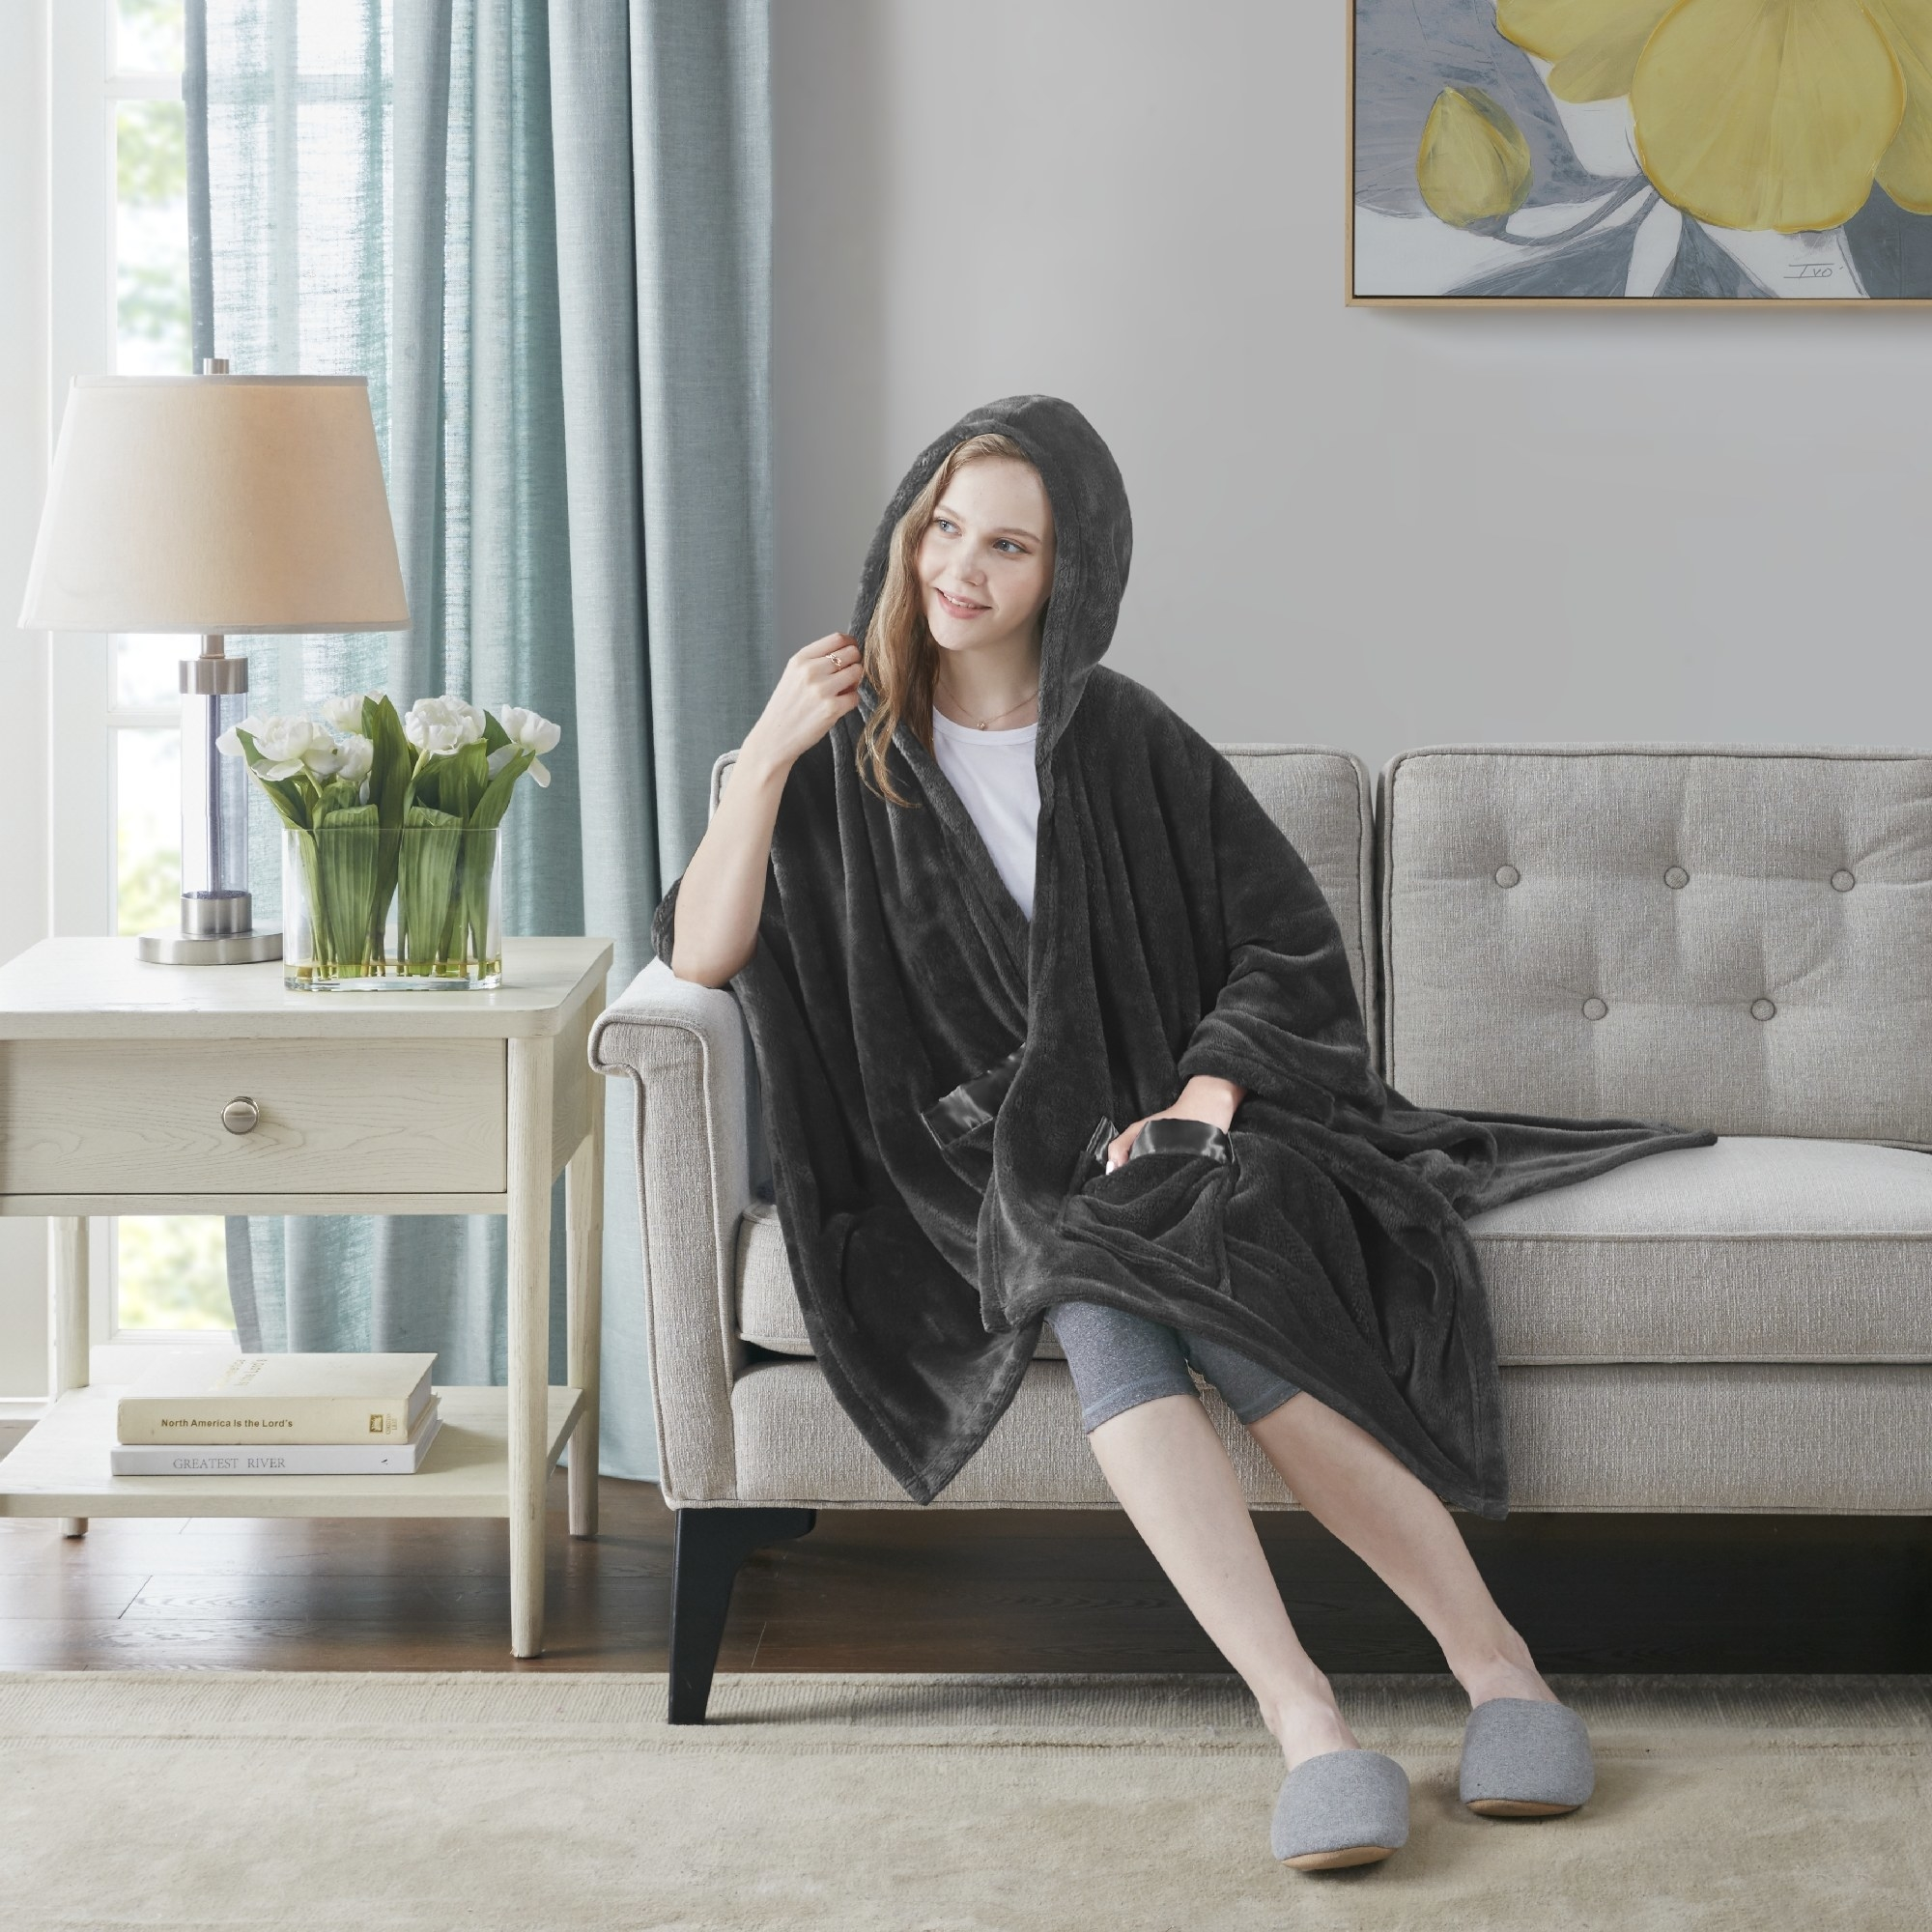 A model wearing the grey wrap on a couch